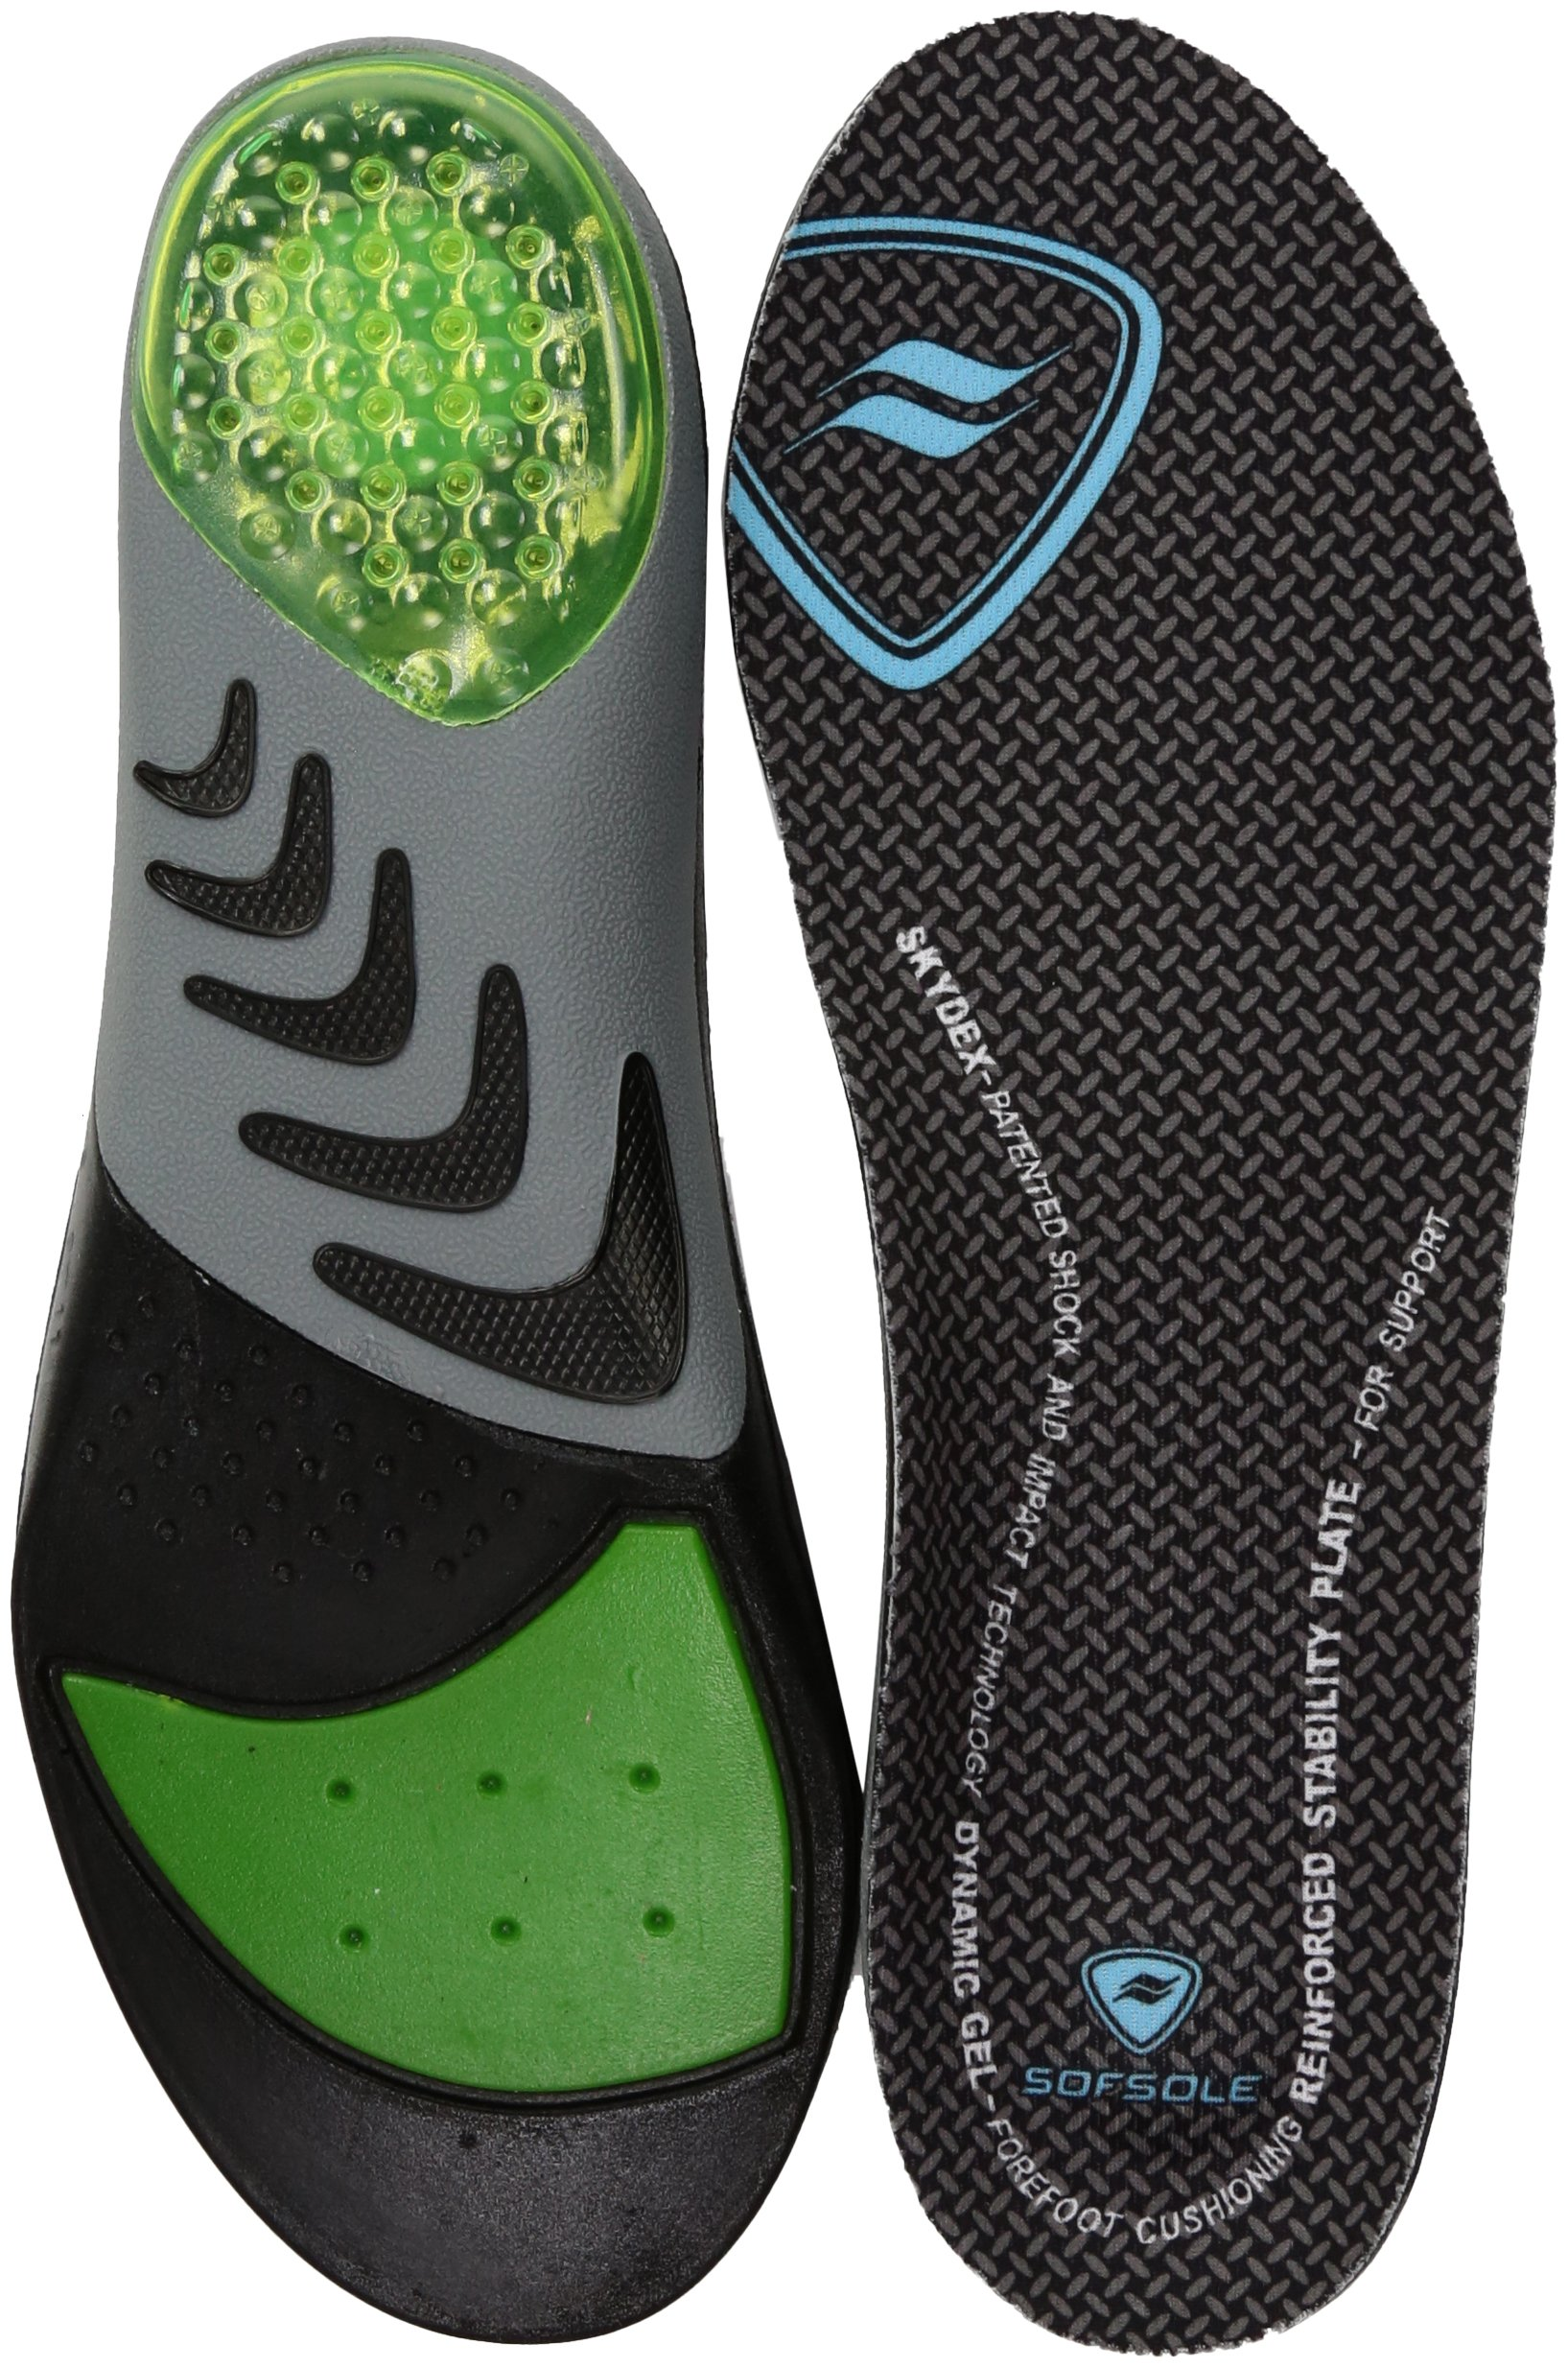 8b8ab69600 Get Quotations · Sof Sole Women's Airr Orthotic Full Length Performance Shoe  Insoles